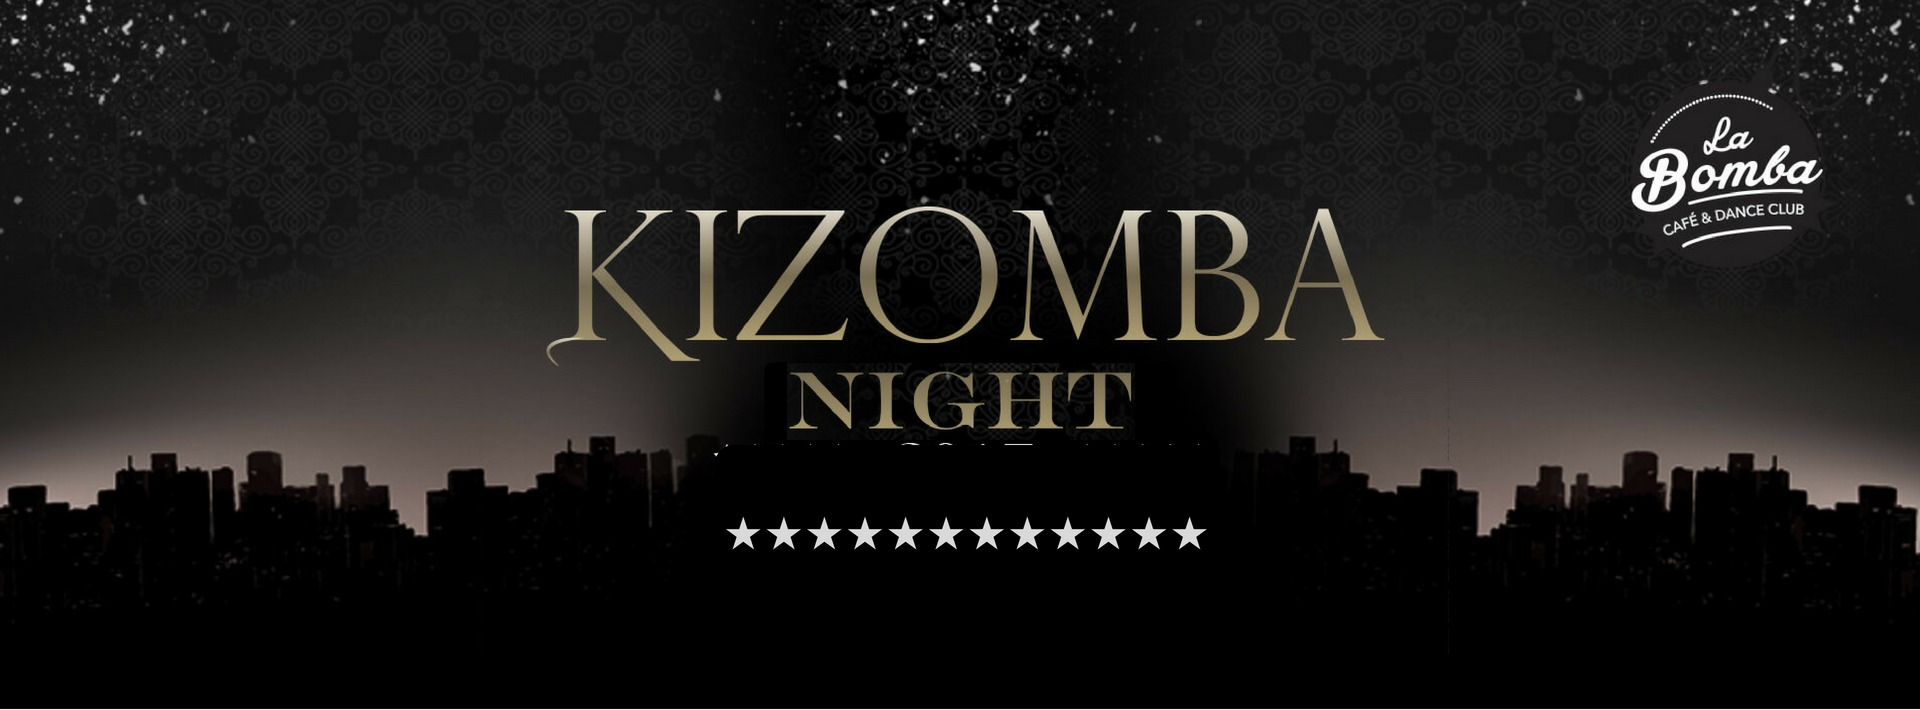 kizomba night la bomba